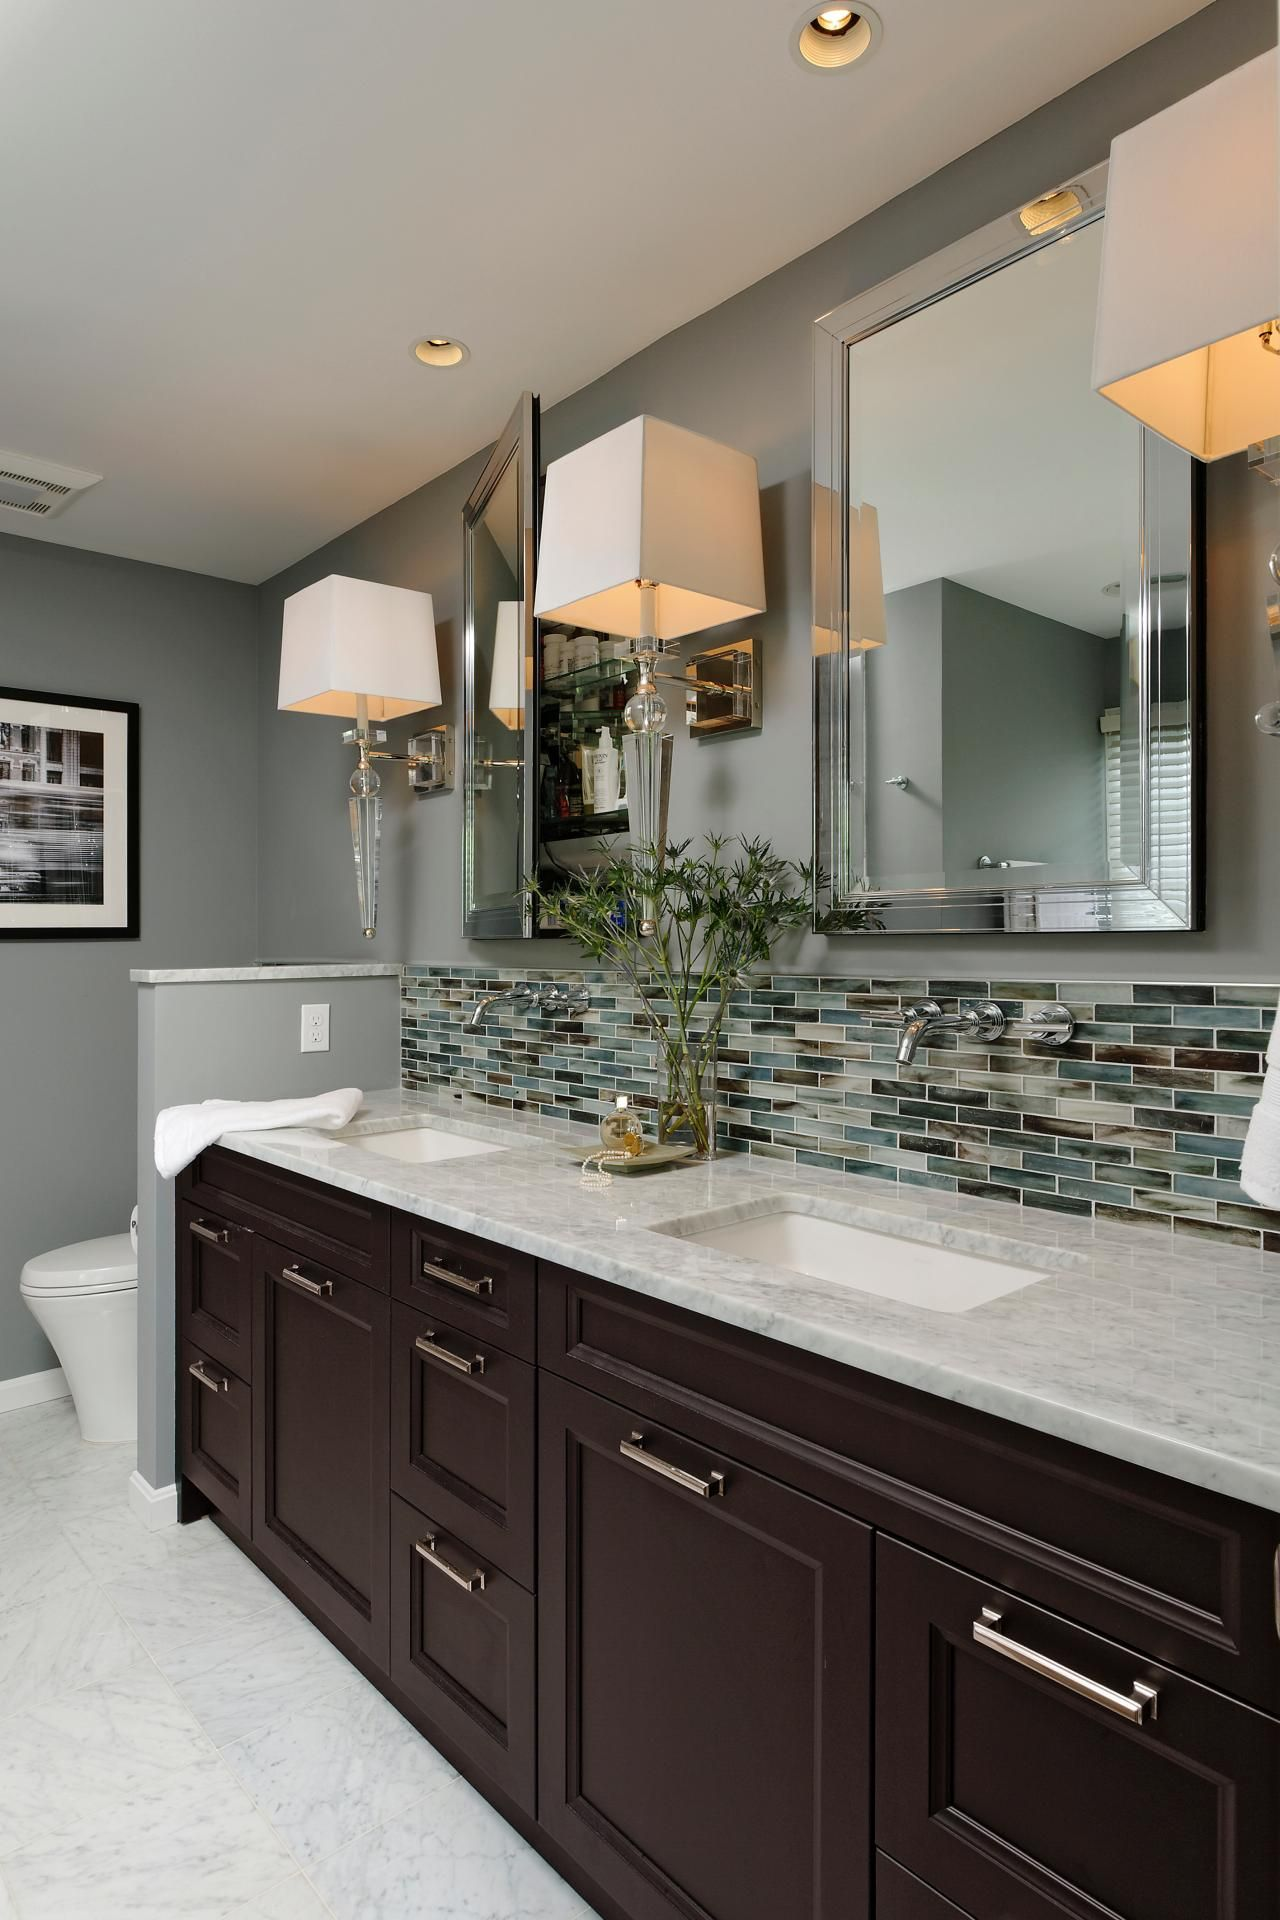 Bathroom Backsplash Ideas this gray contemporary bathroom features a double-vanity design